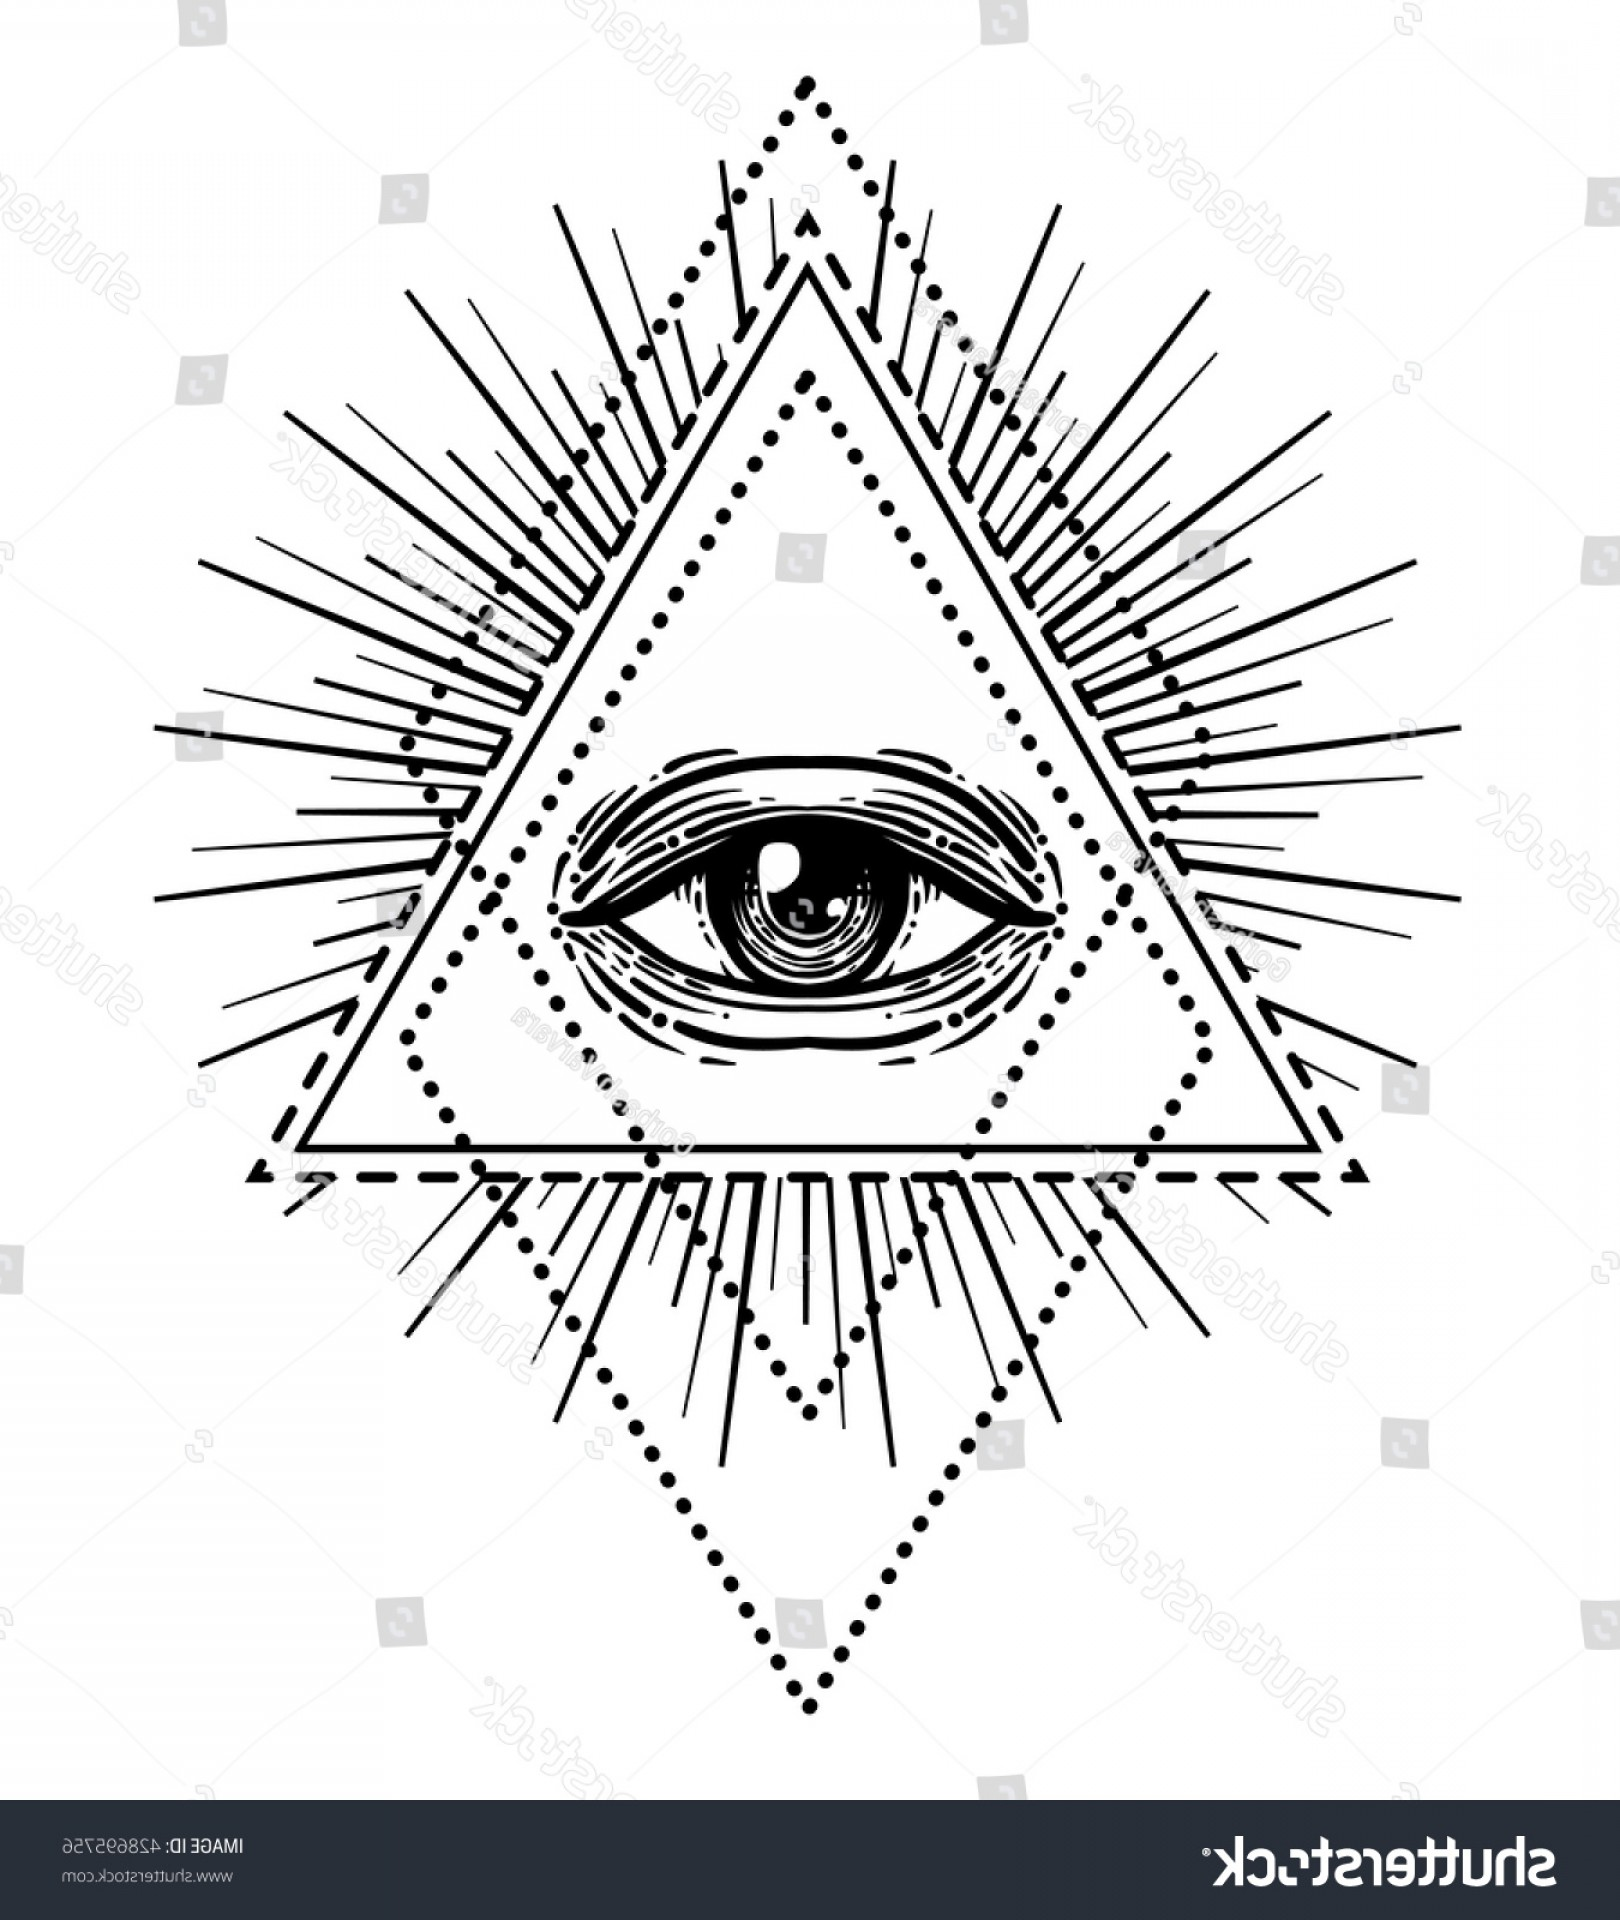 Pyramid With Eye Of Providence Vector: Blackwork Tattoo Flash Eye Providence Masonic